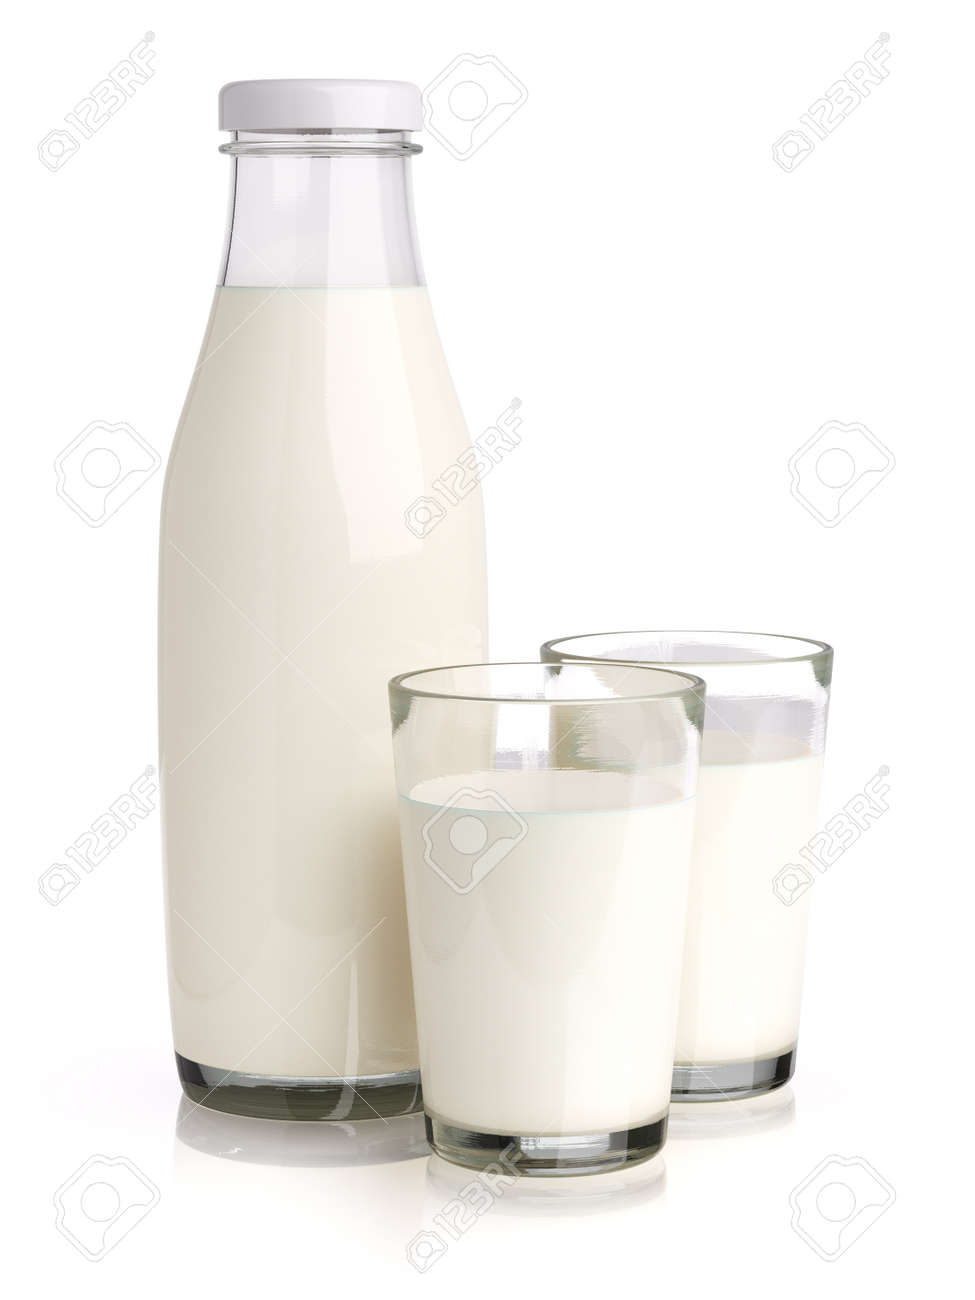 Three glass bottle with milk isolated on white background 3d render - 158497768